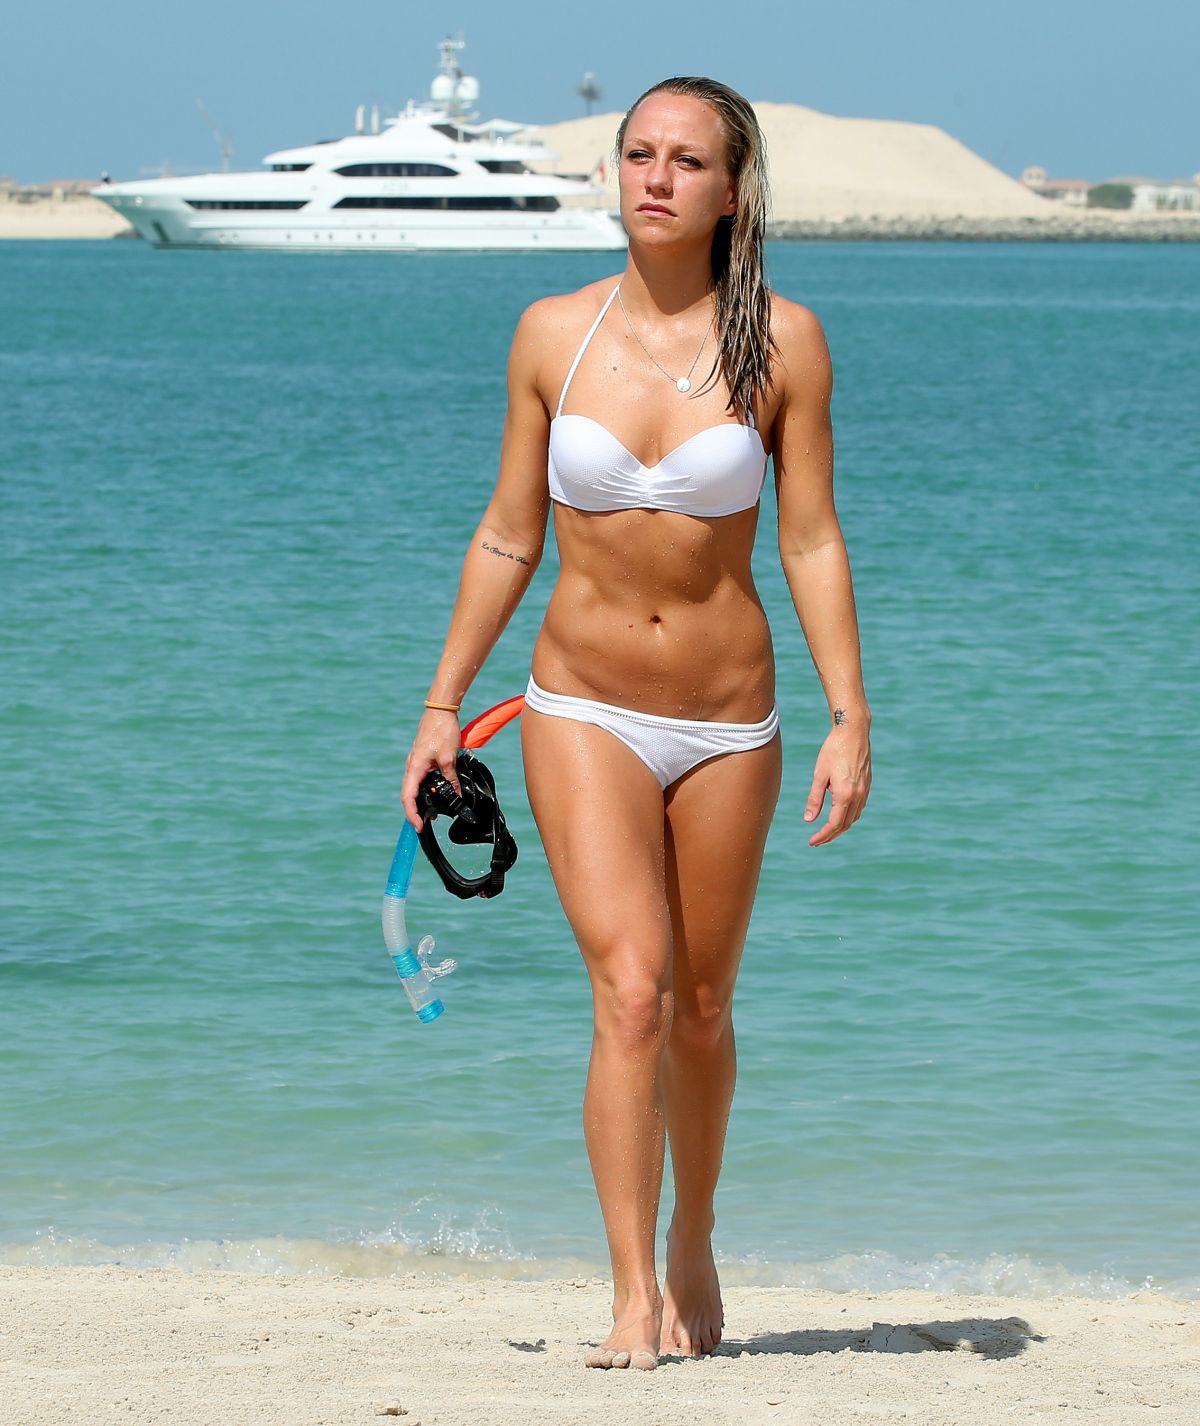 Paparazzi Chloe Madeley naked (39 photos), Topless, Hot, Instagram, cleavage 2015